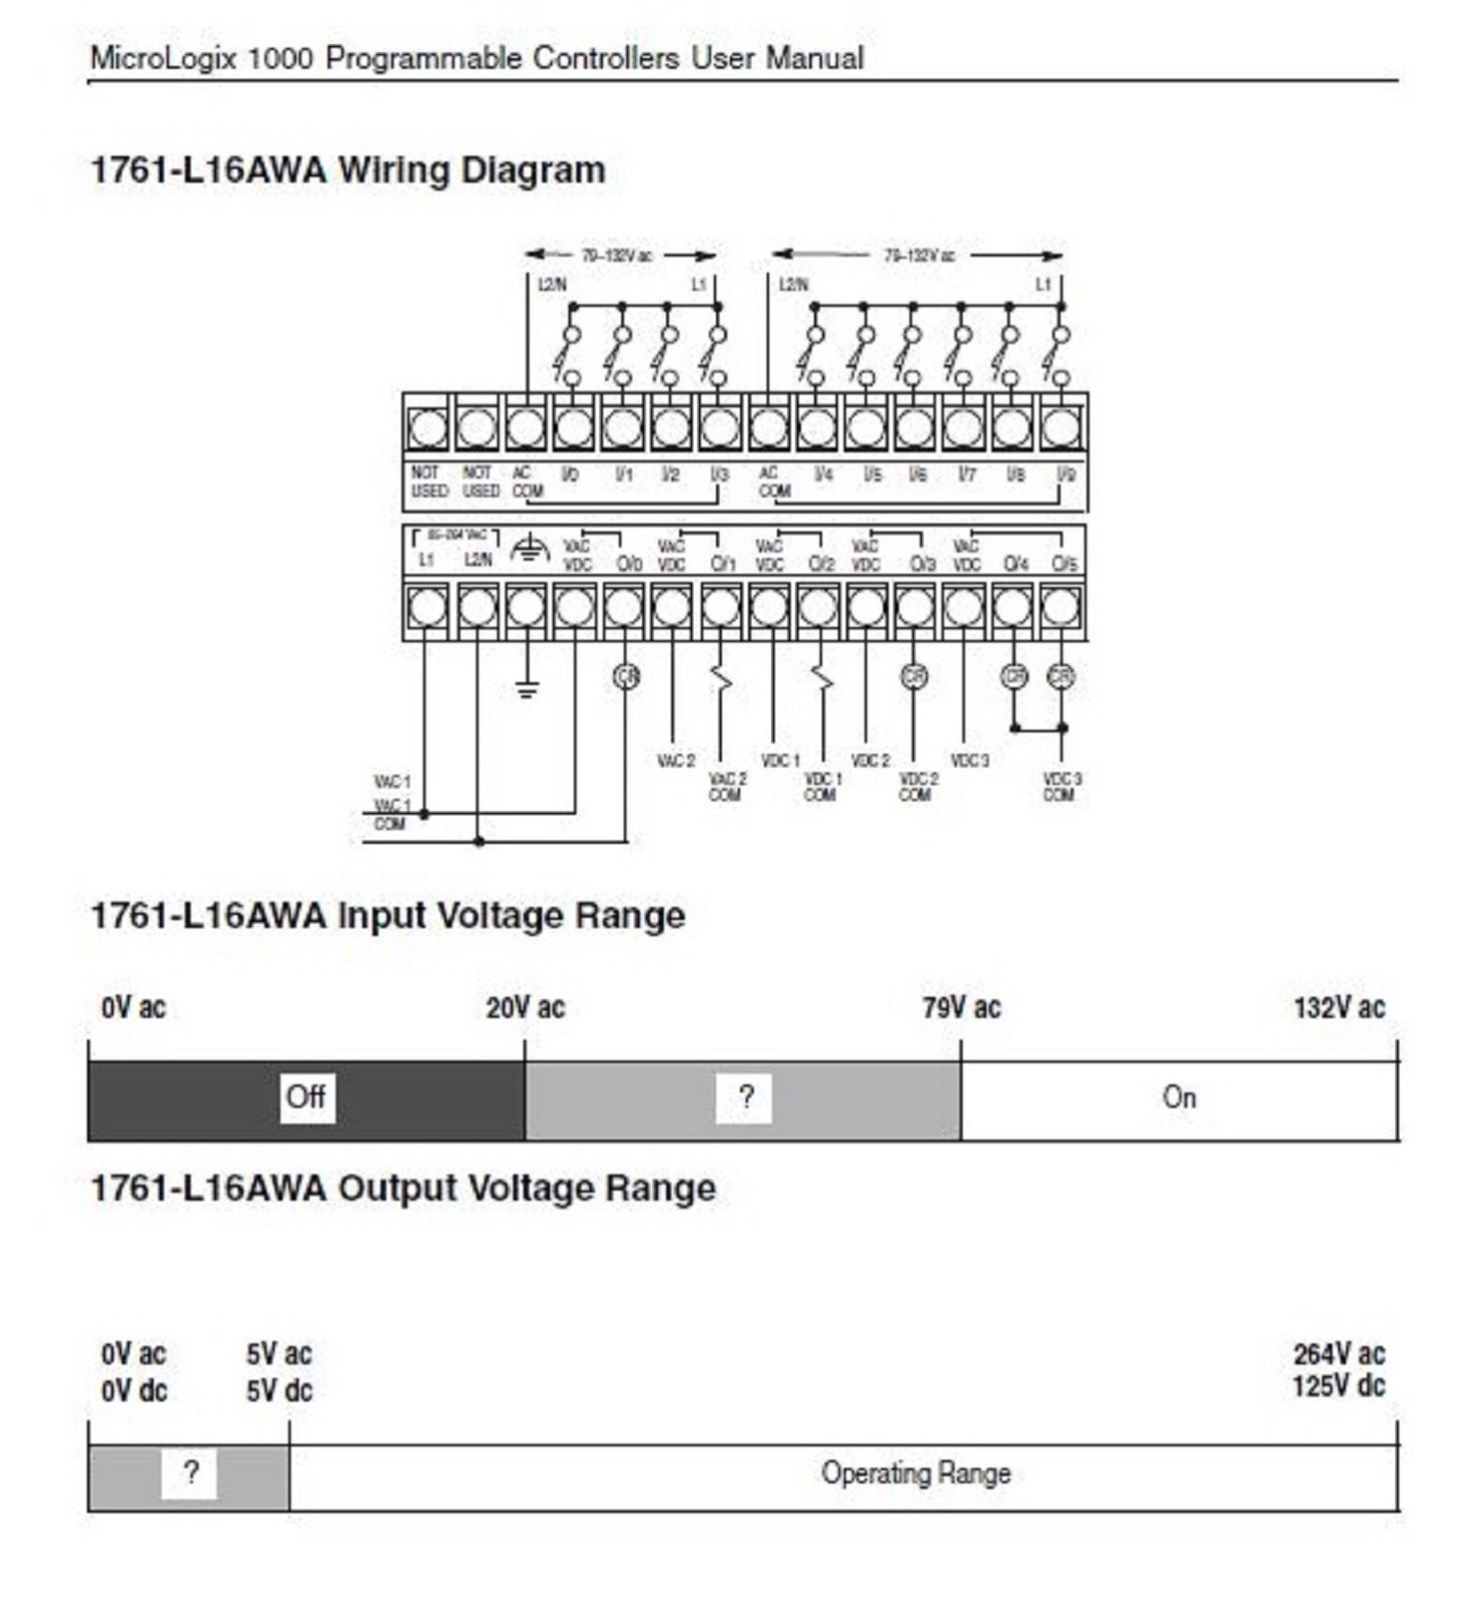 1761 cbl pm02 wiring diagram Download-Micrologix 1000 Wiring Diagram Unique Outstanding Micrologix 1000 Programming Picture Collection 8-s